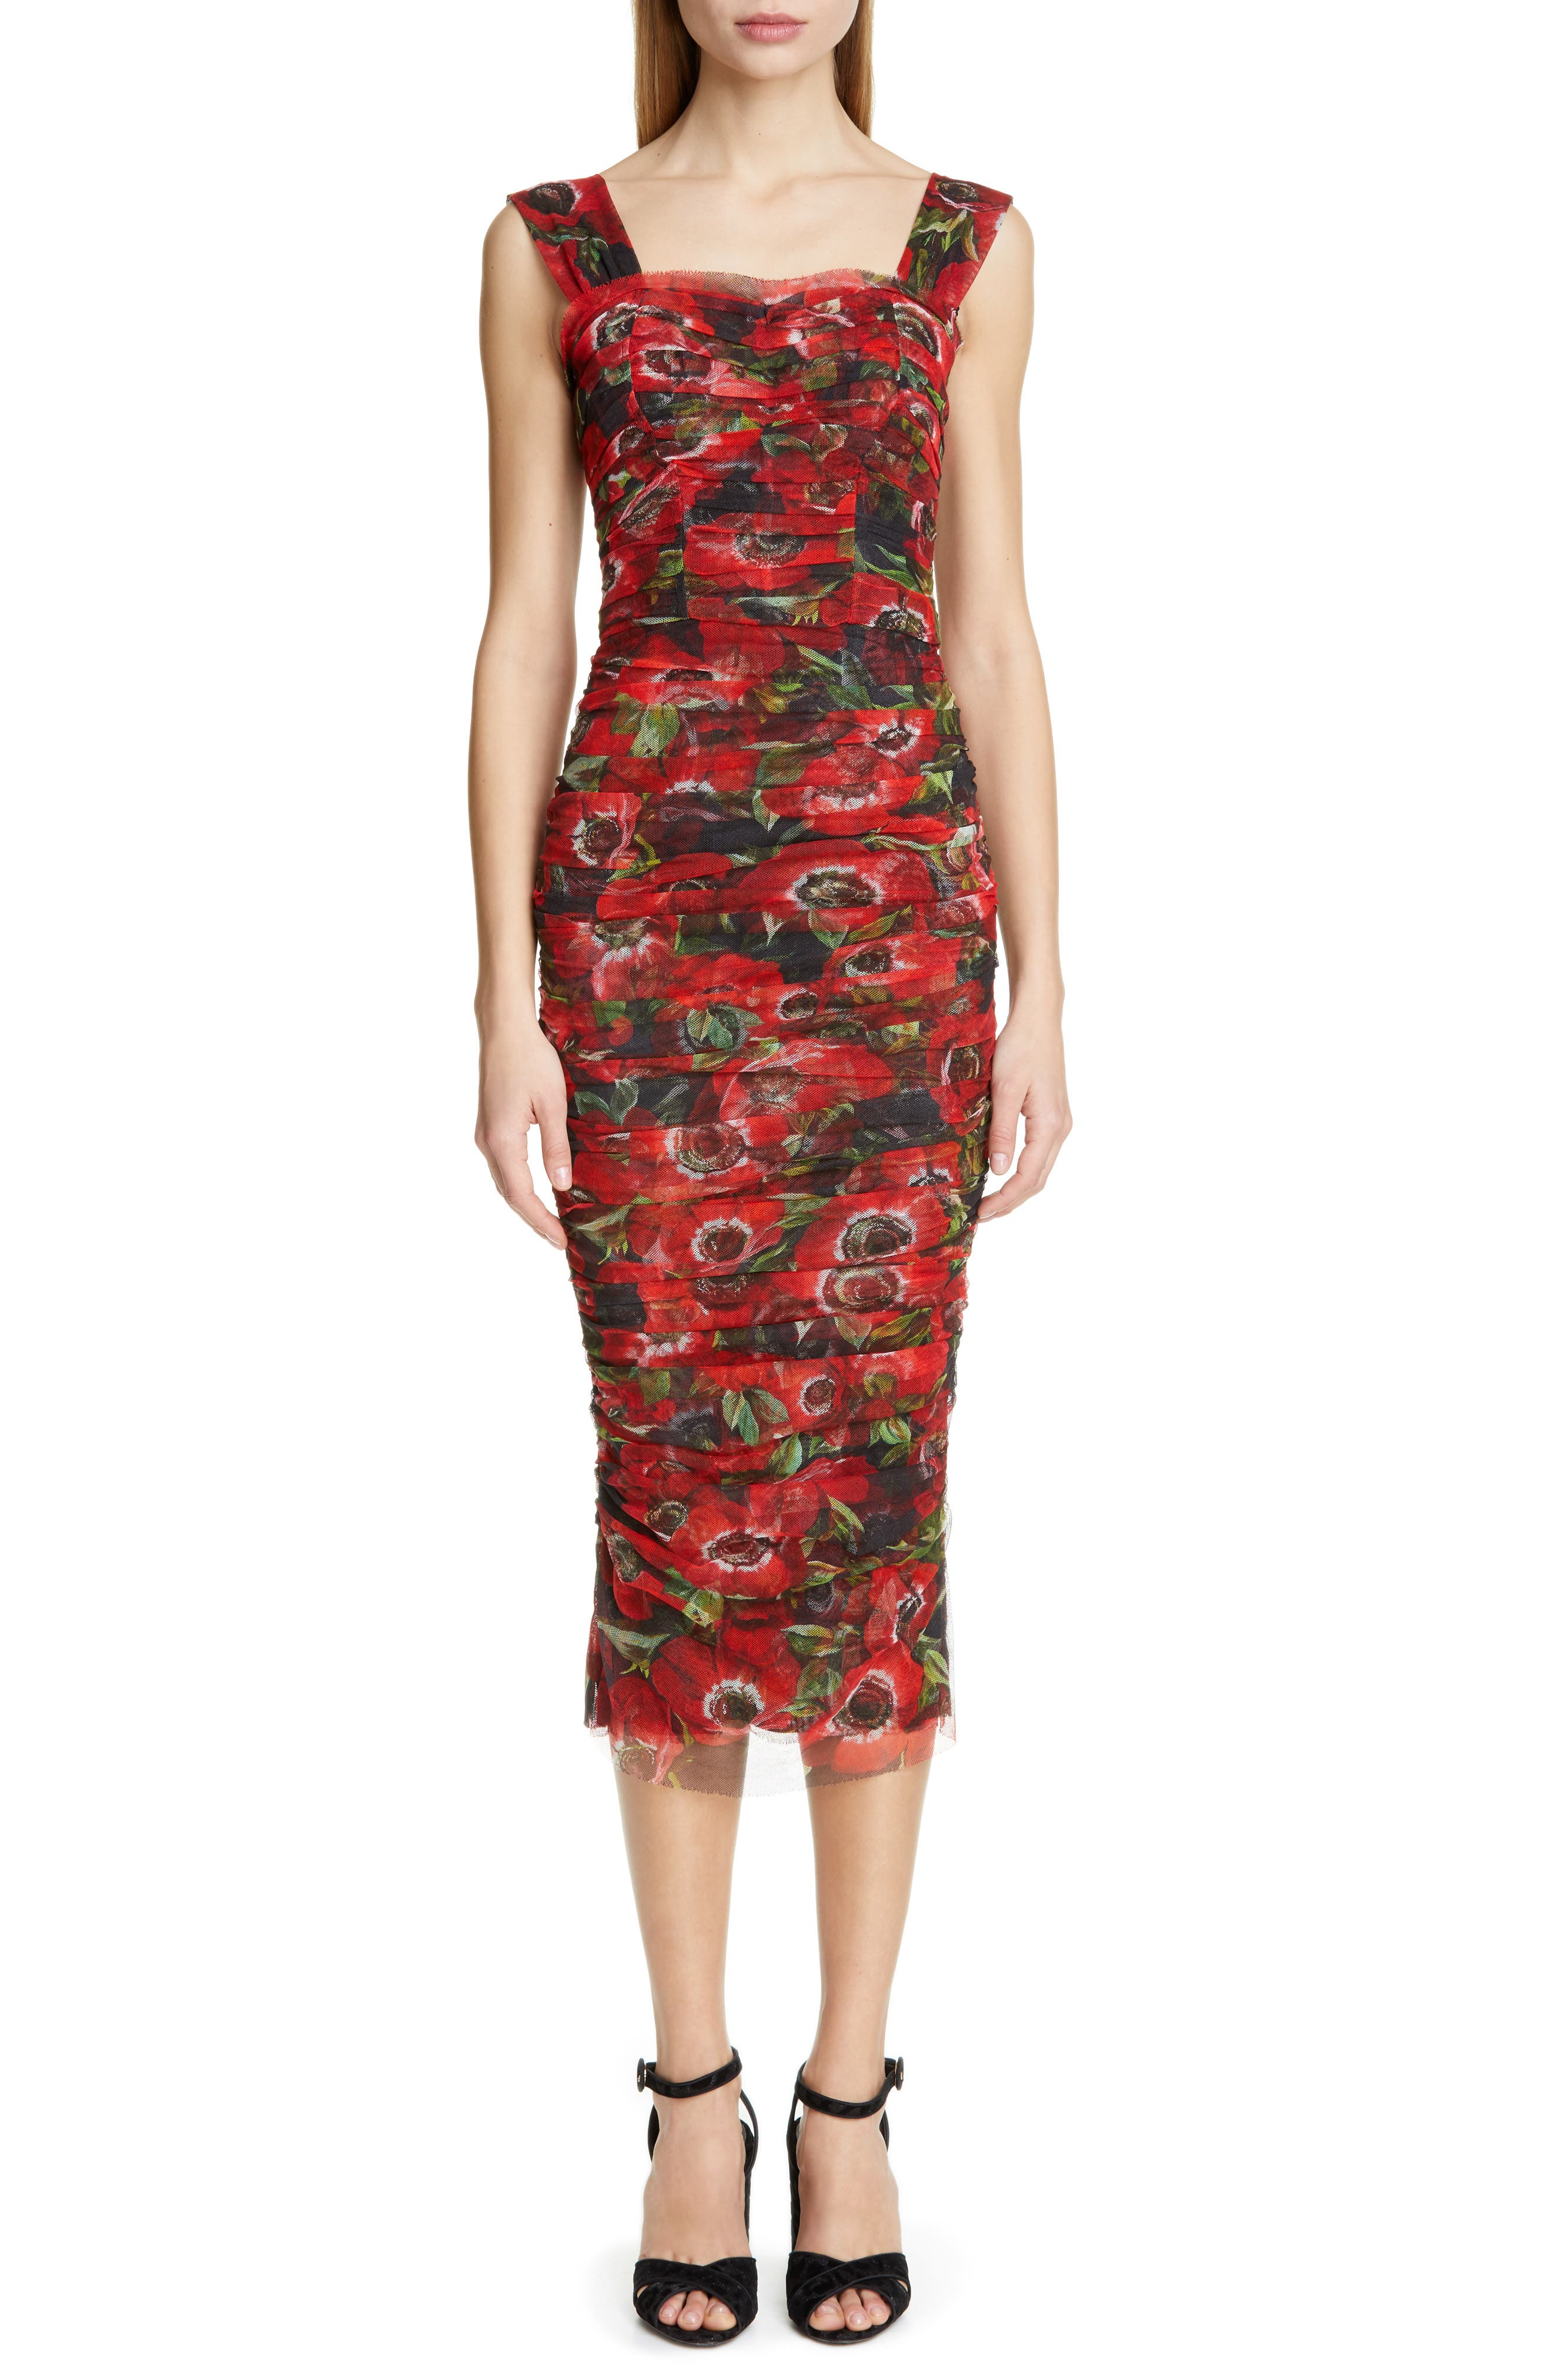 Dolce & gabbana Floral Print Ruched Tulle Sheath Dress, US / 46 IT - Red